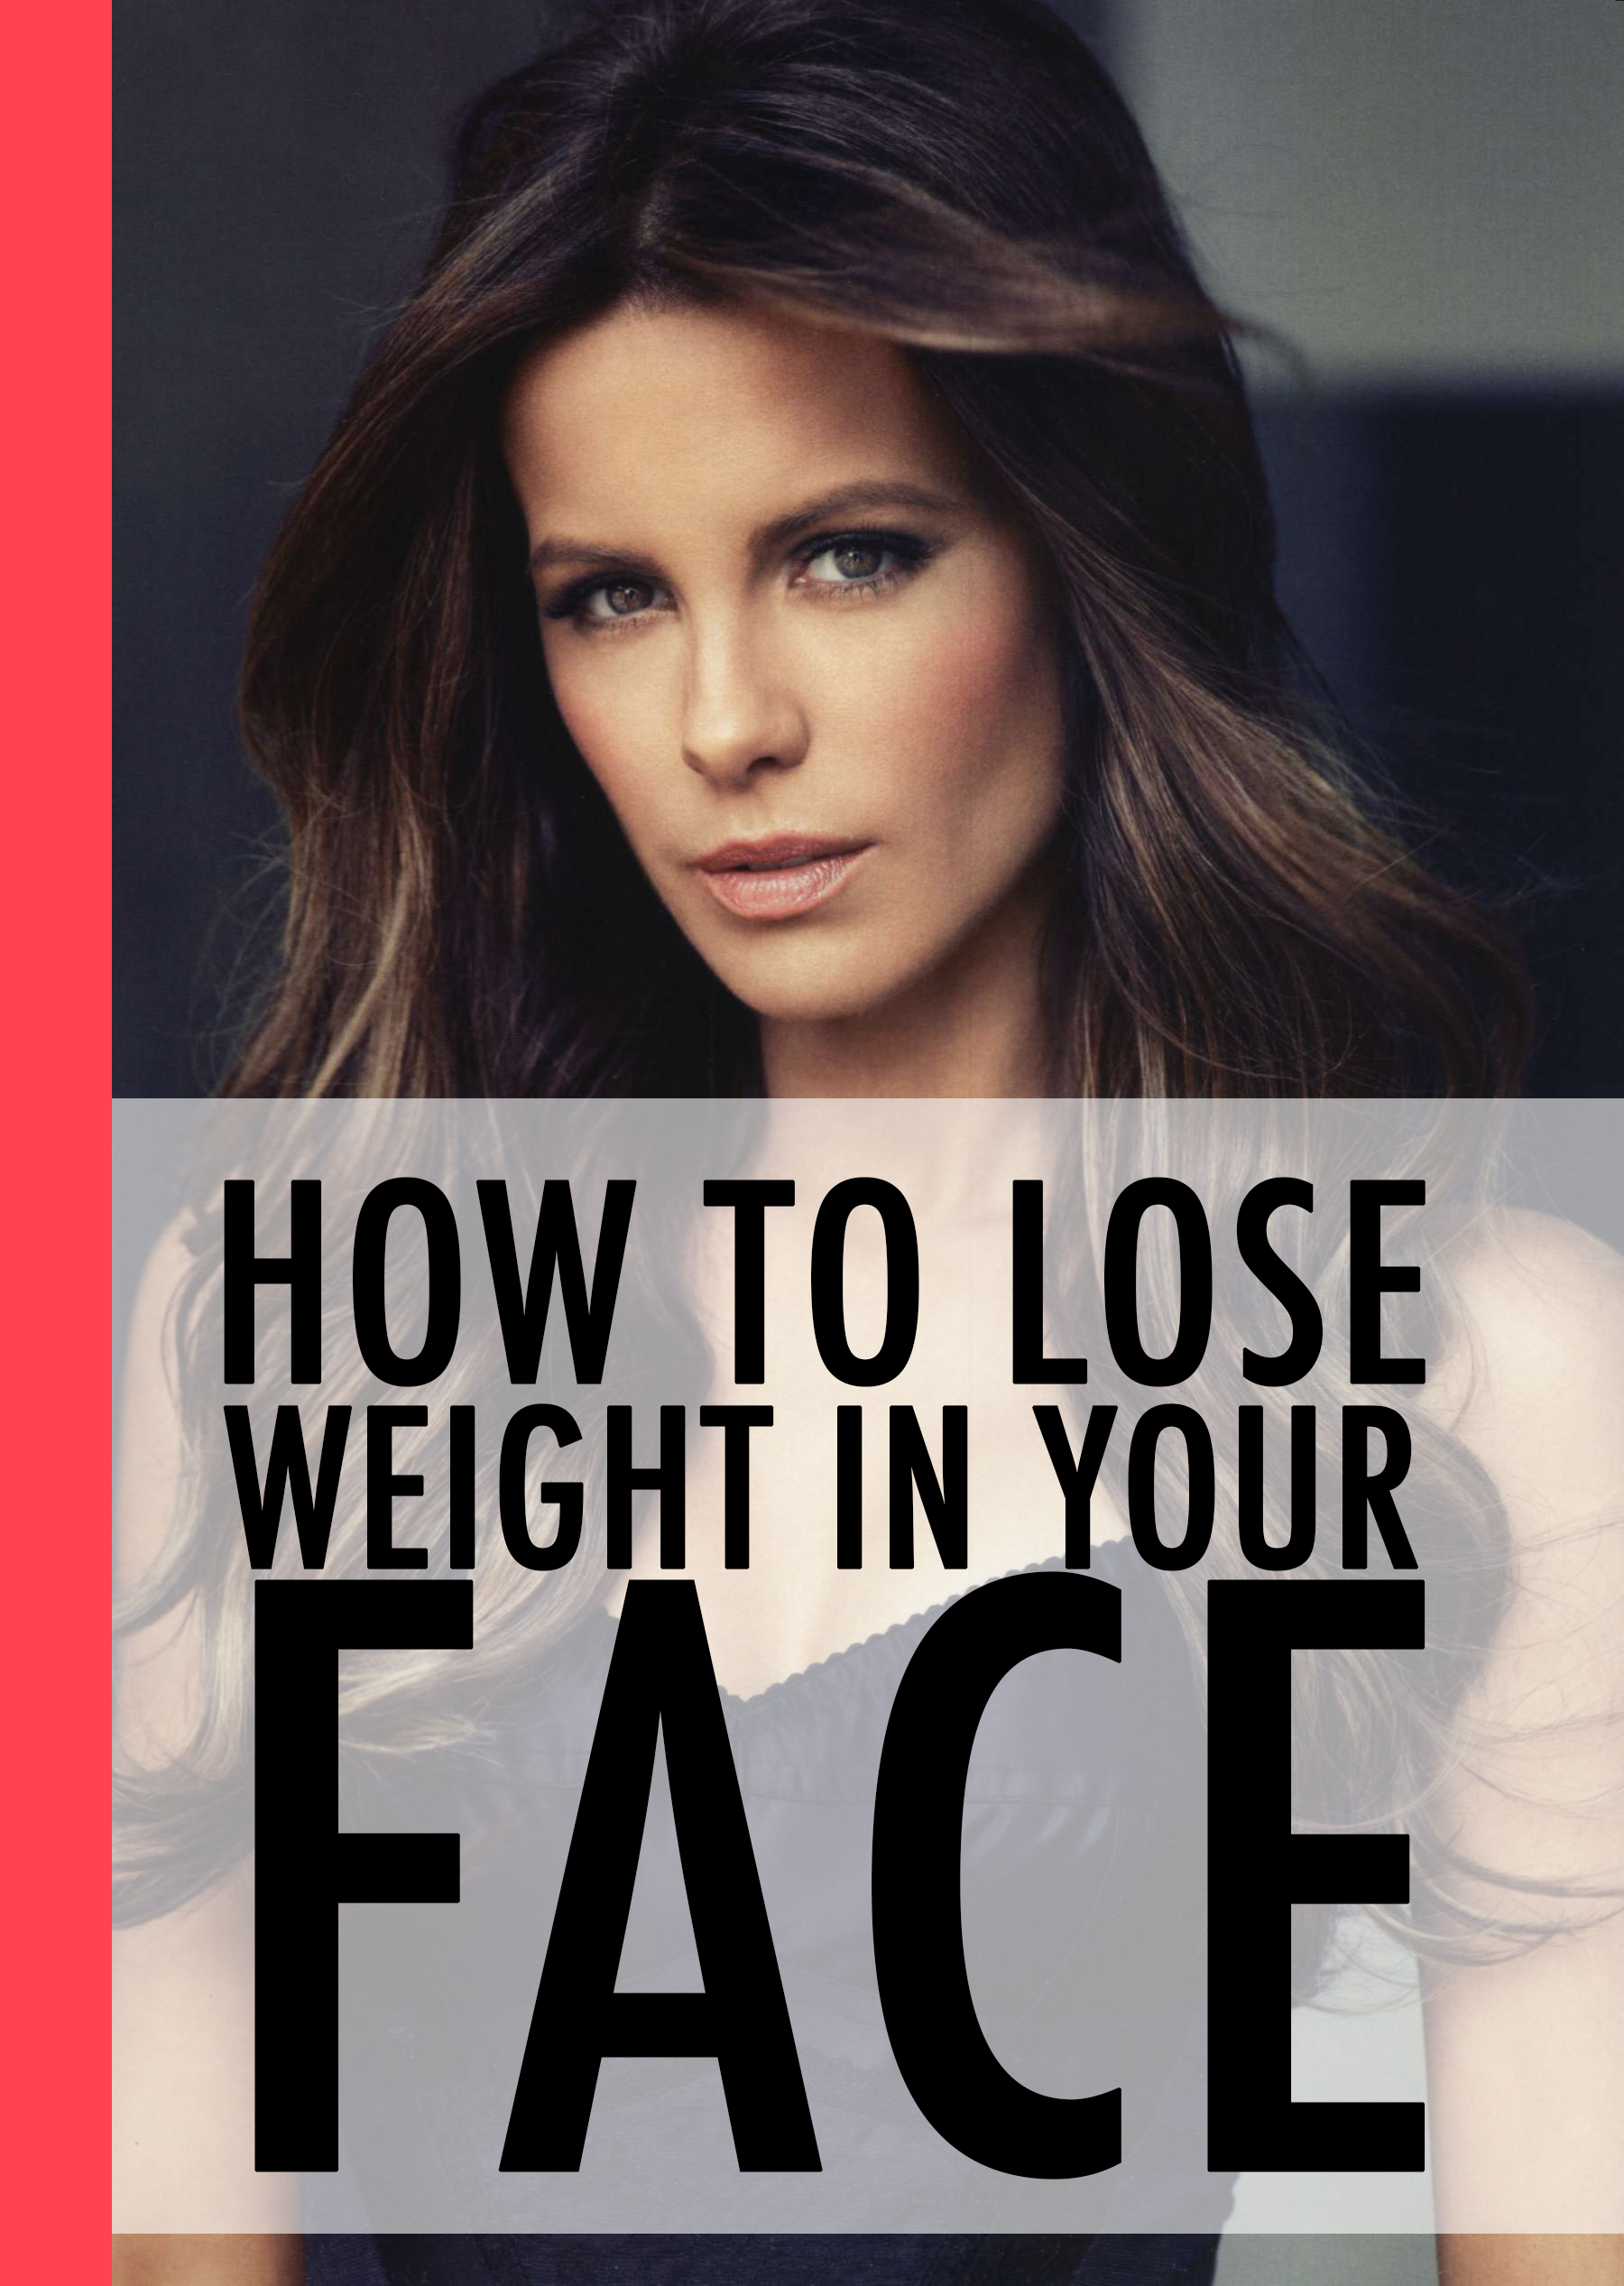 Amazing Facial Exercises That Tone And Define Your Face